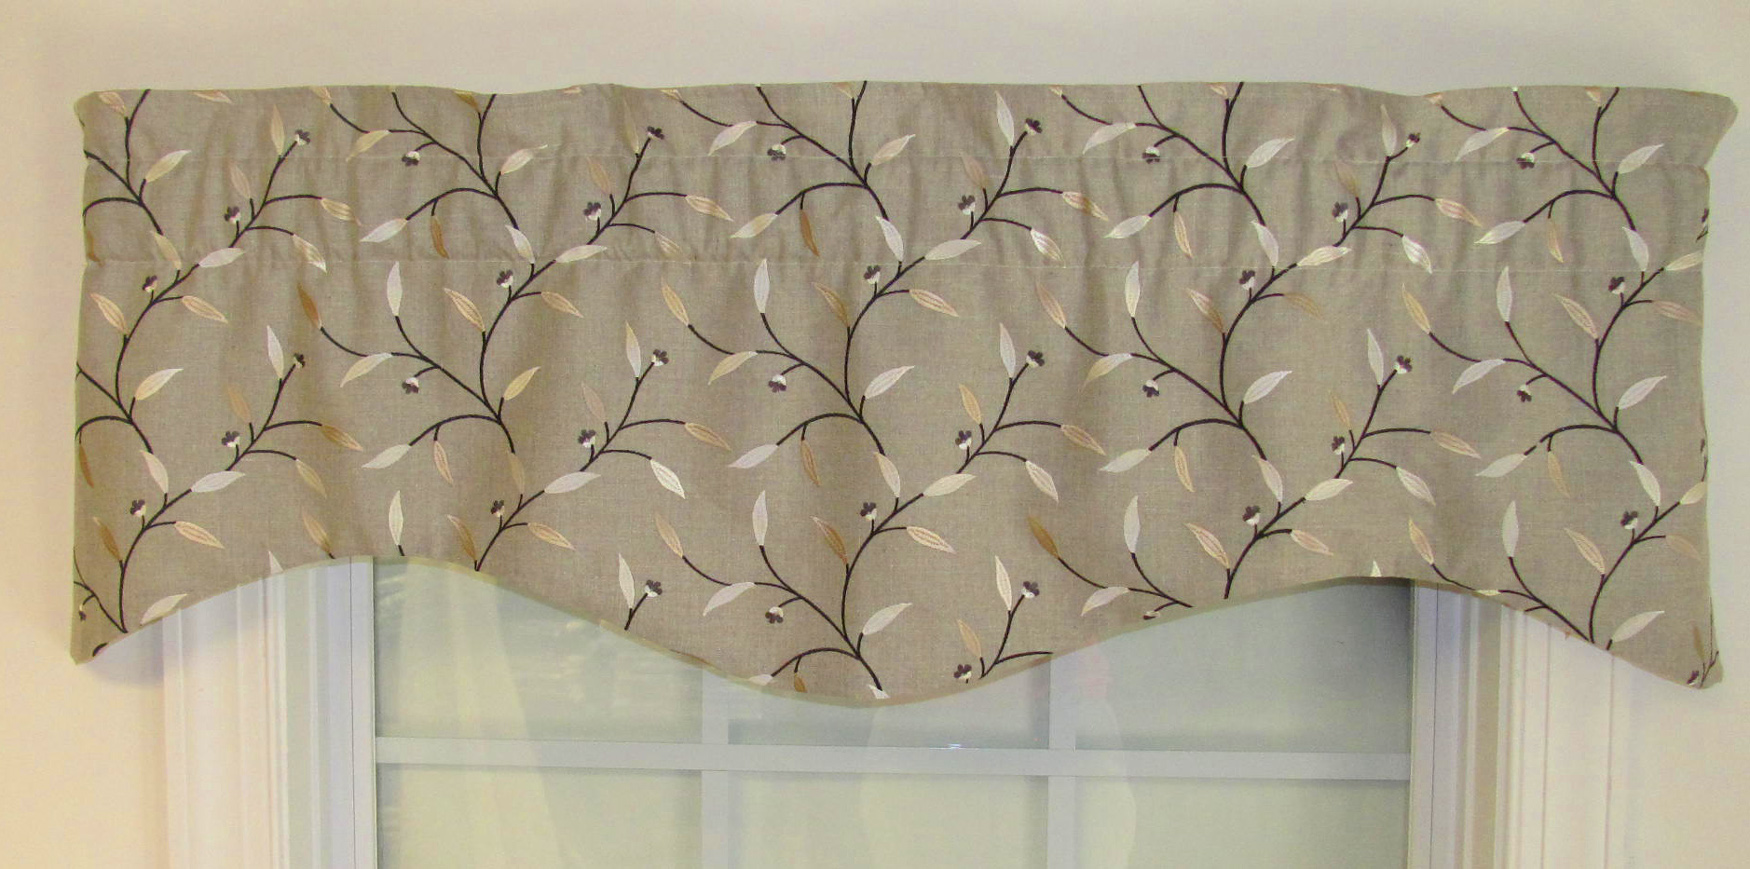 Shaped Valances: Solid, Patterned, Cornice, Box Pleat